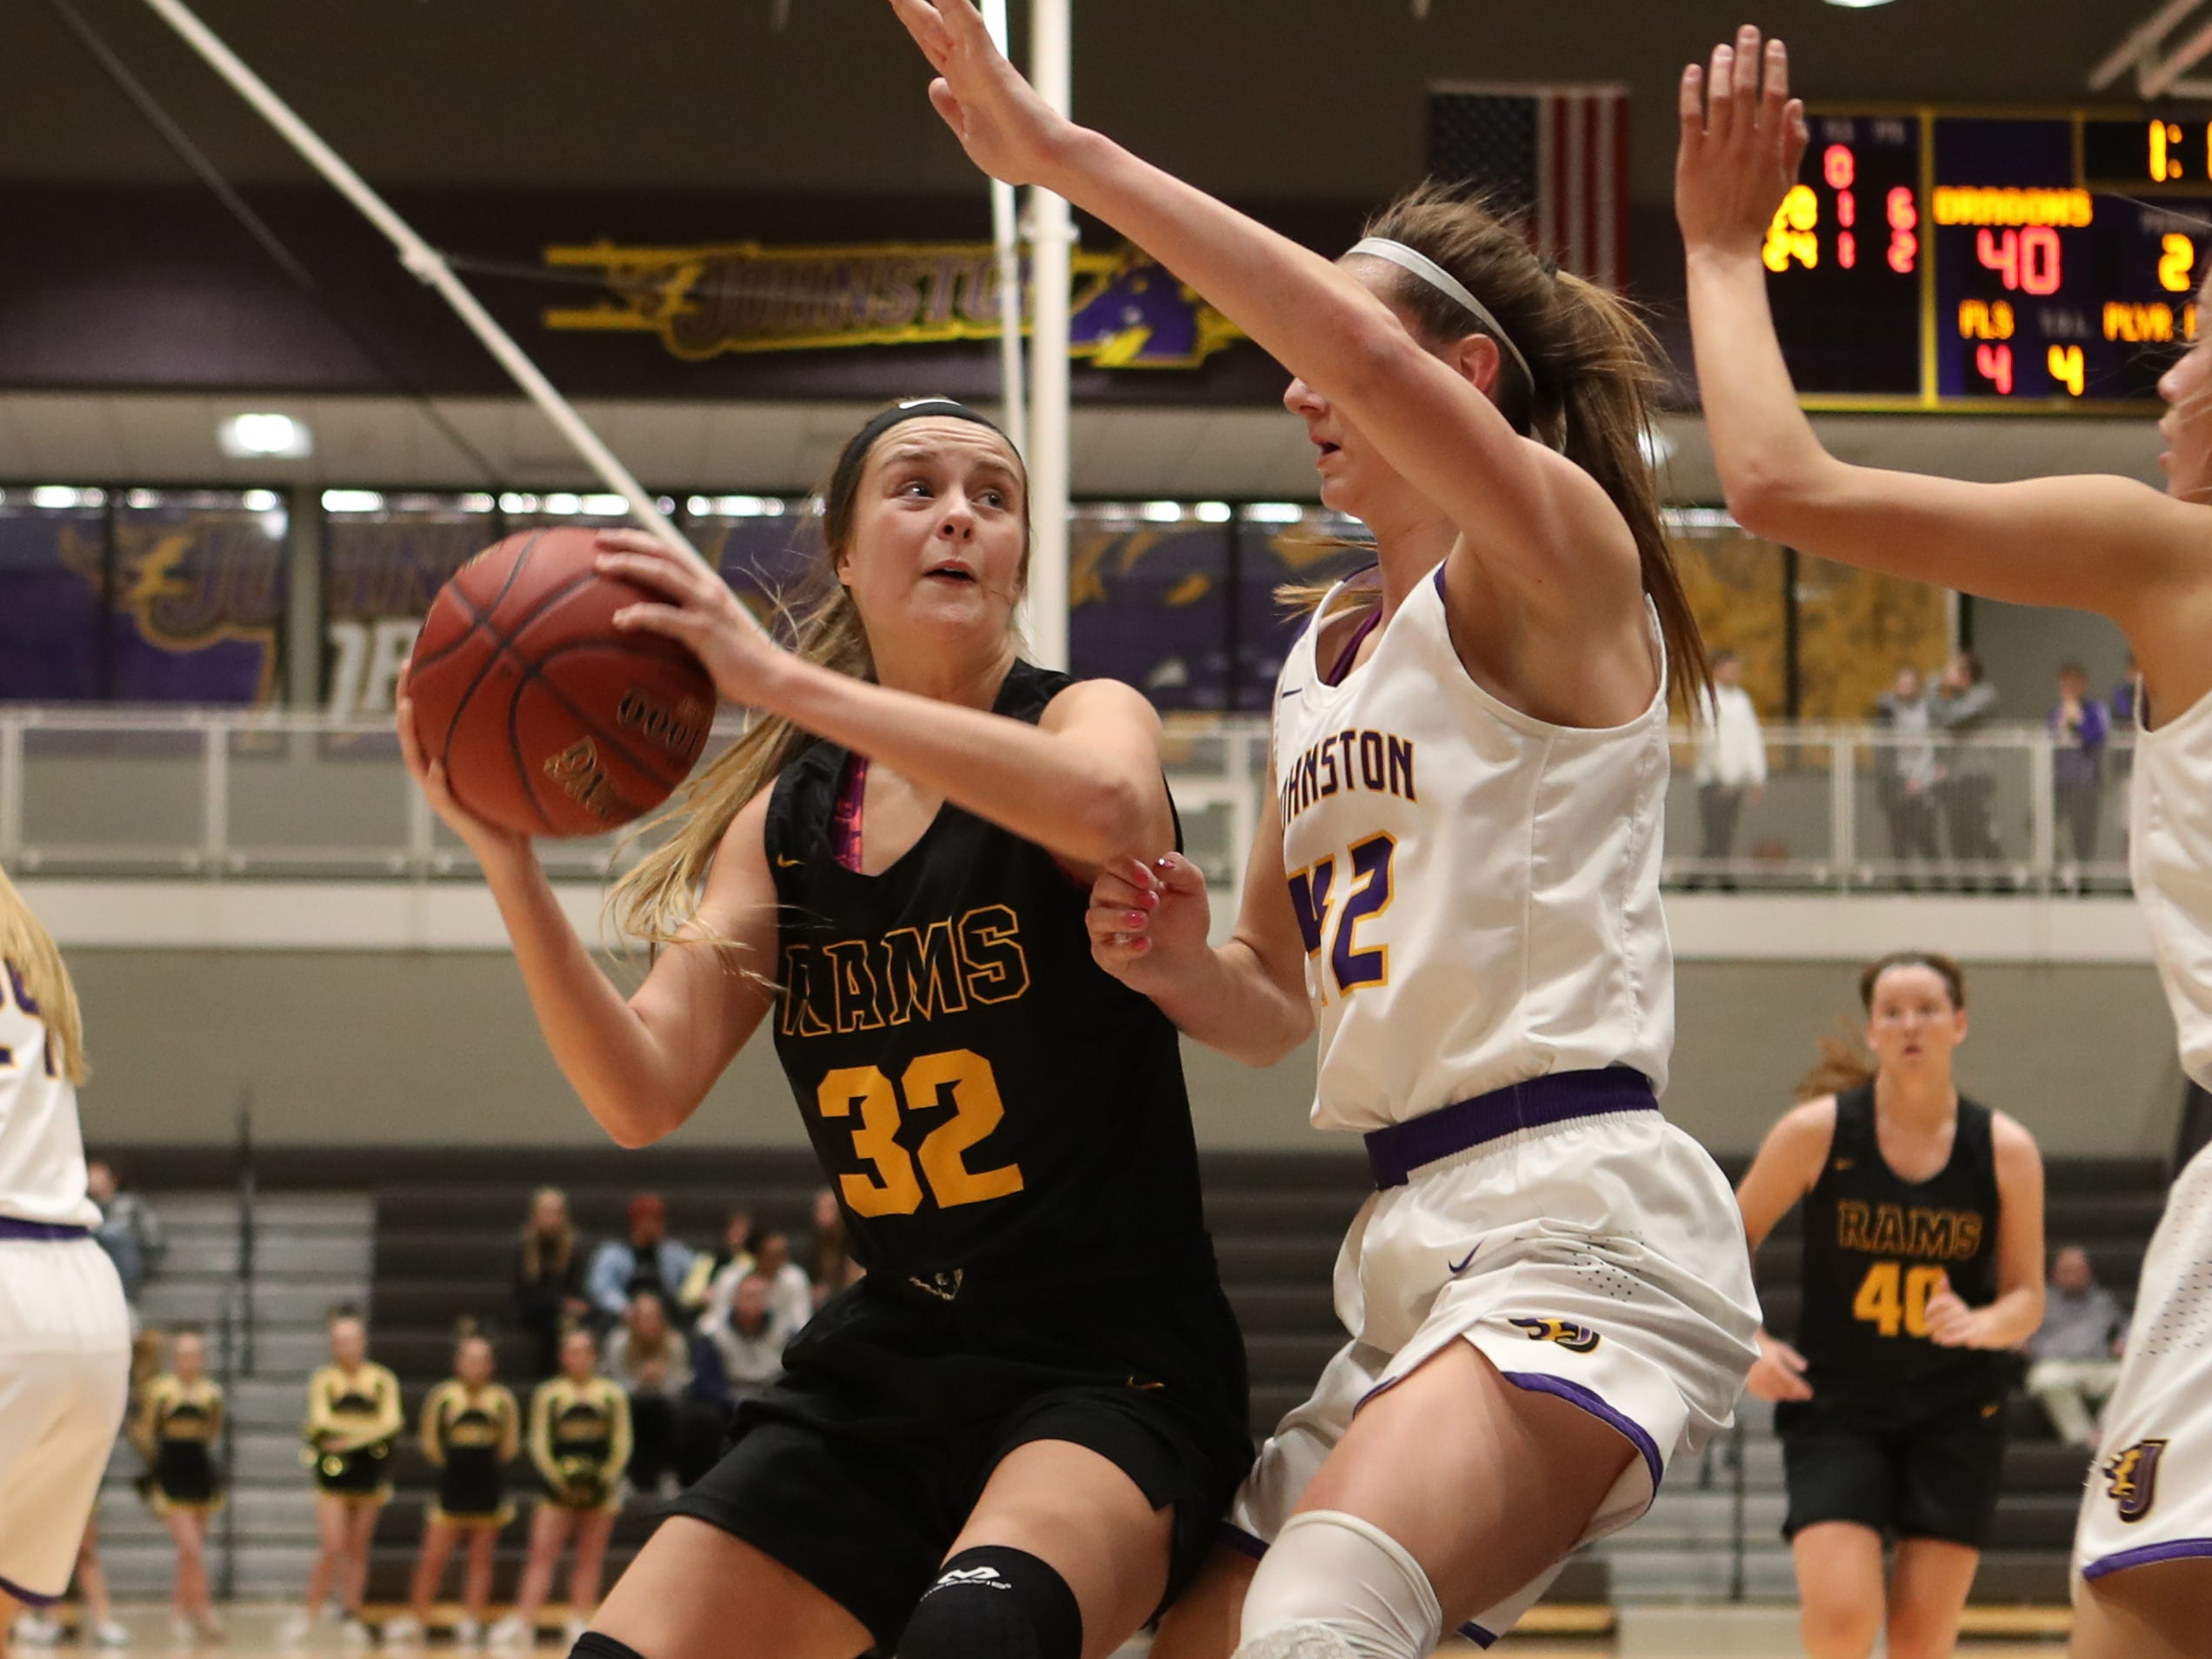 Southeast Polk's Maggie McGraw (32) looks to the basket Feb. 5 in a game against No. 1 Johnston at Johnston High School. The Dragons won the game 89-67. McGraw had 23 points.